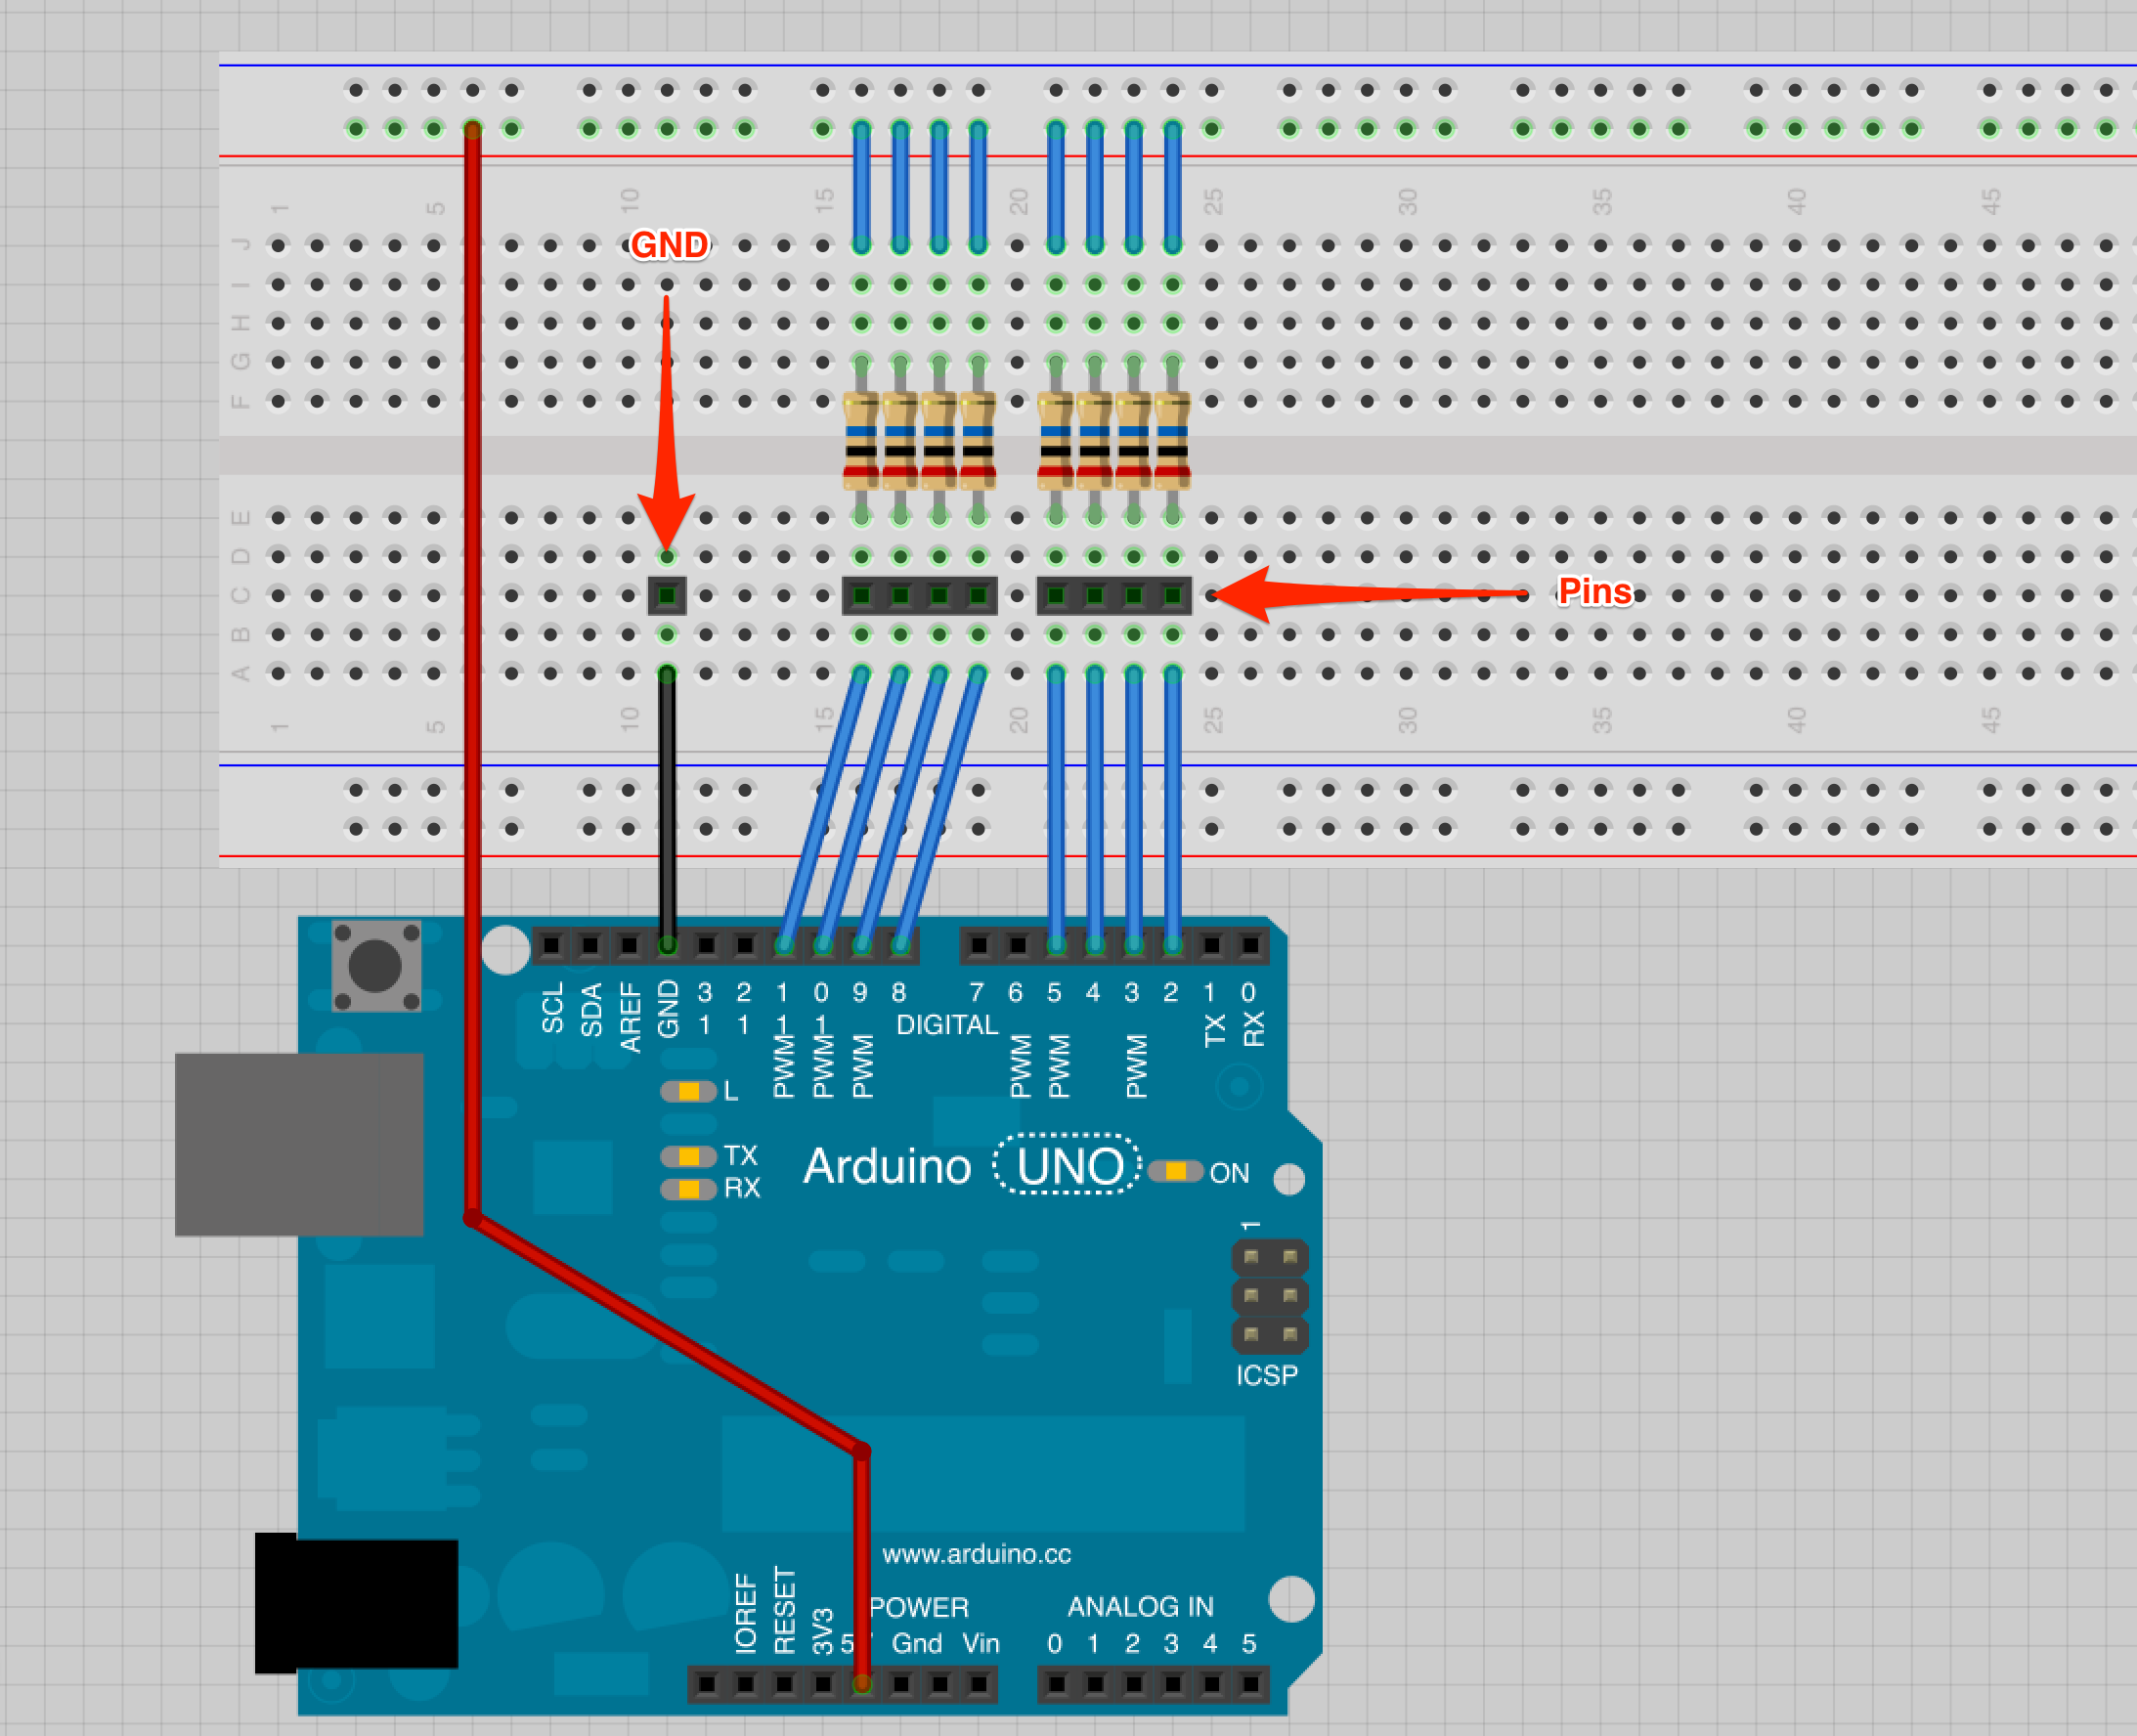 Measure your energy consumption with Arduino